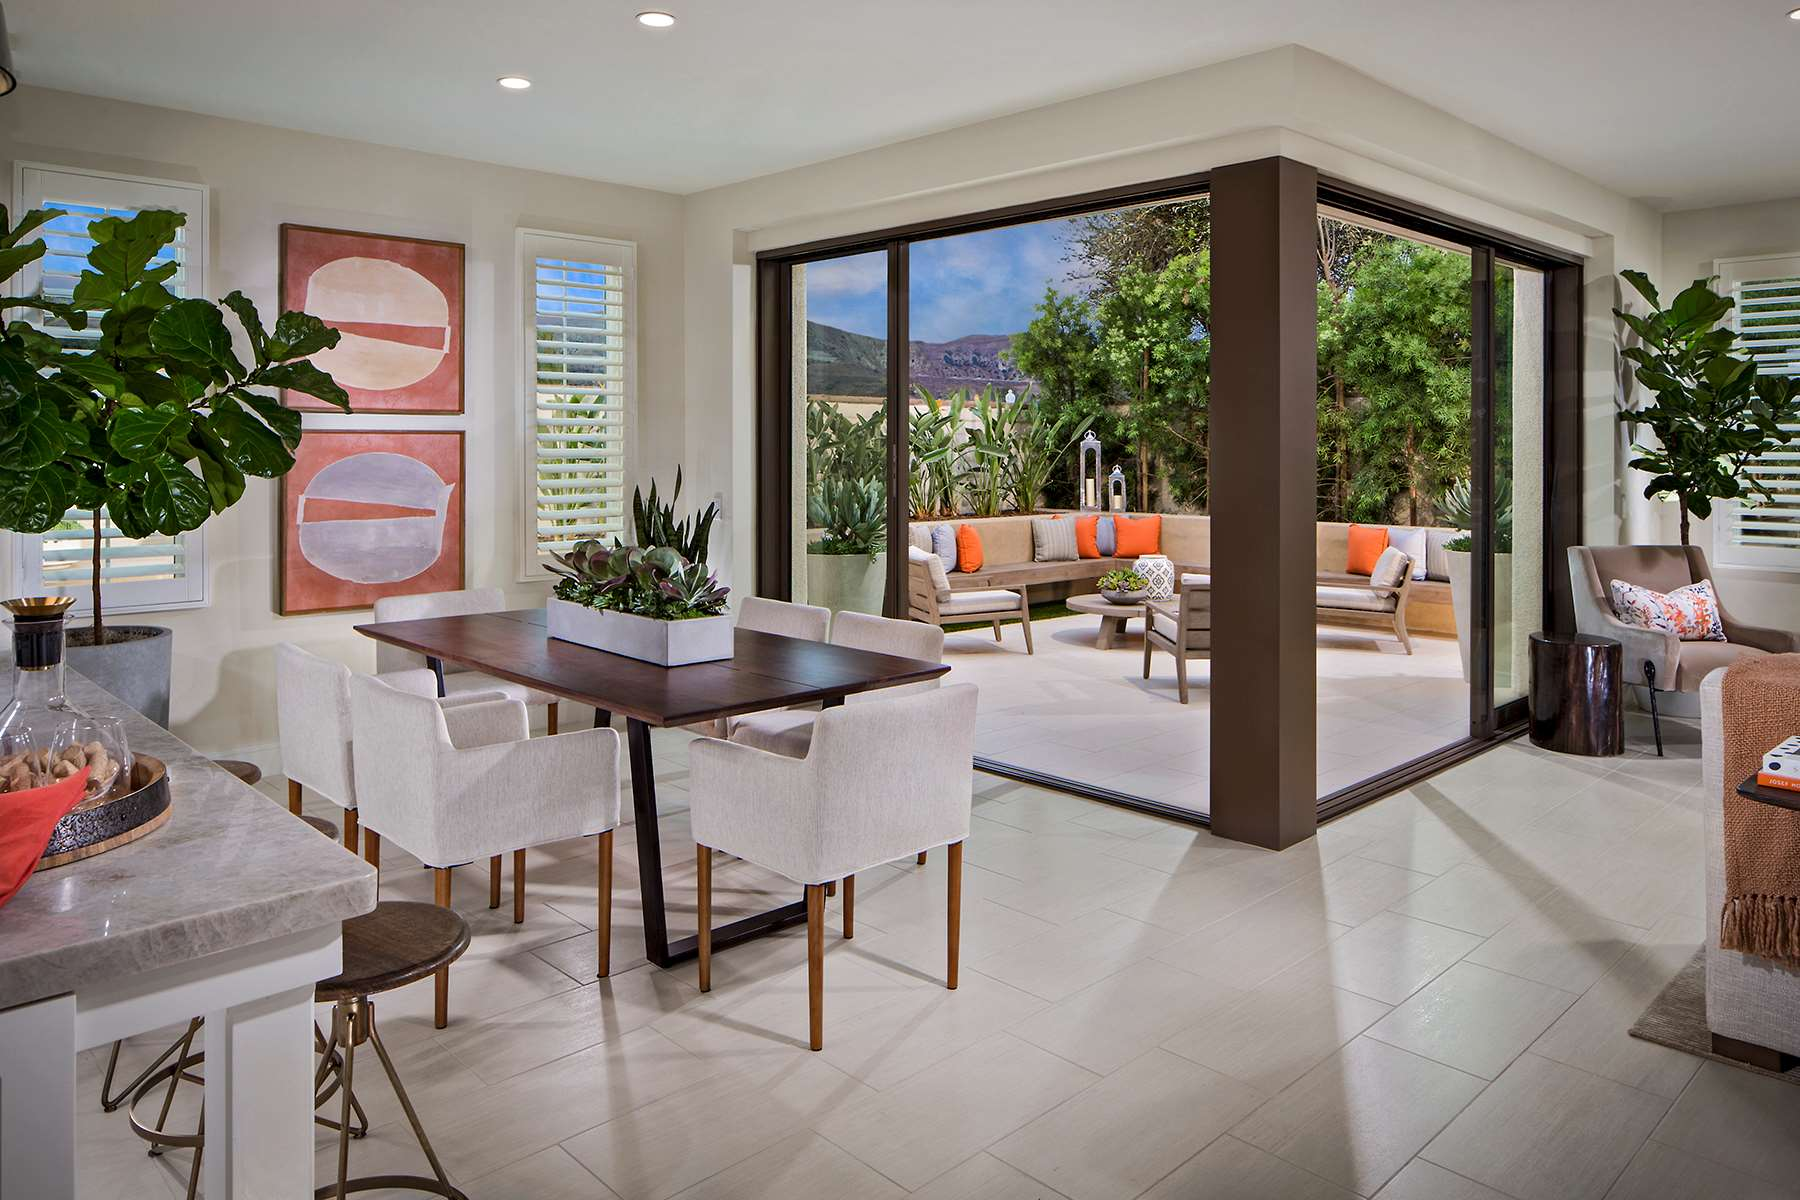 Dining Room at Lago Residence 2 in Irvine